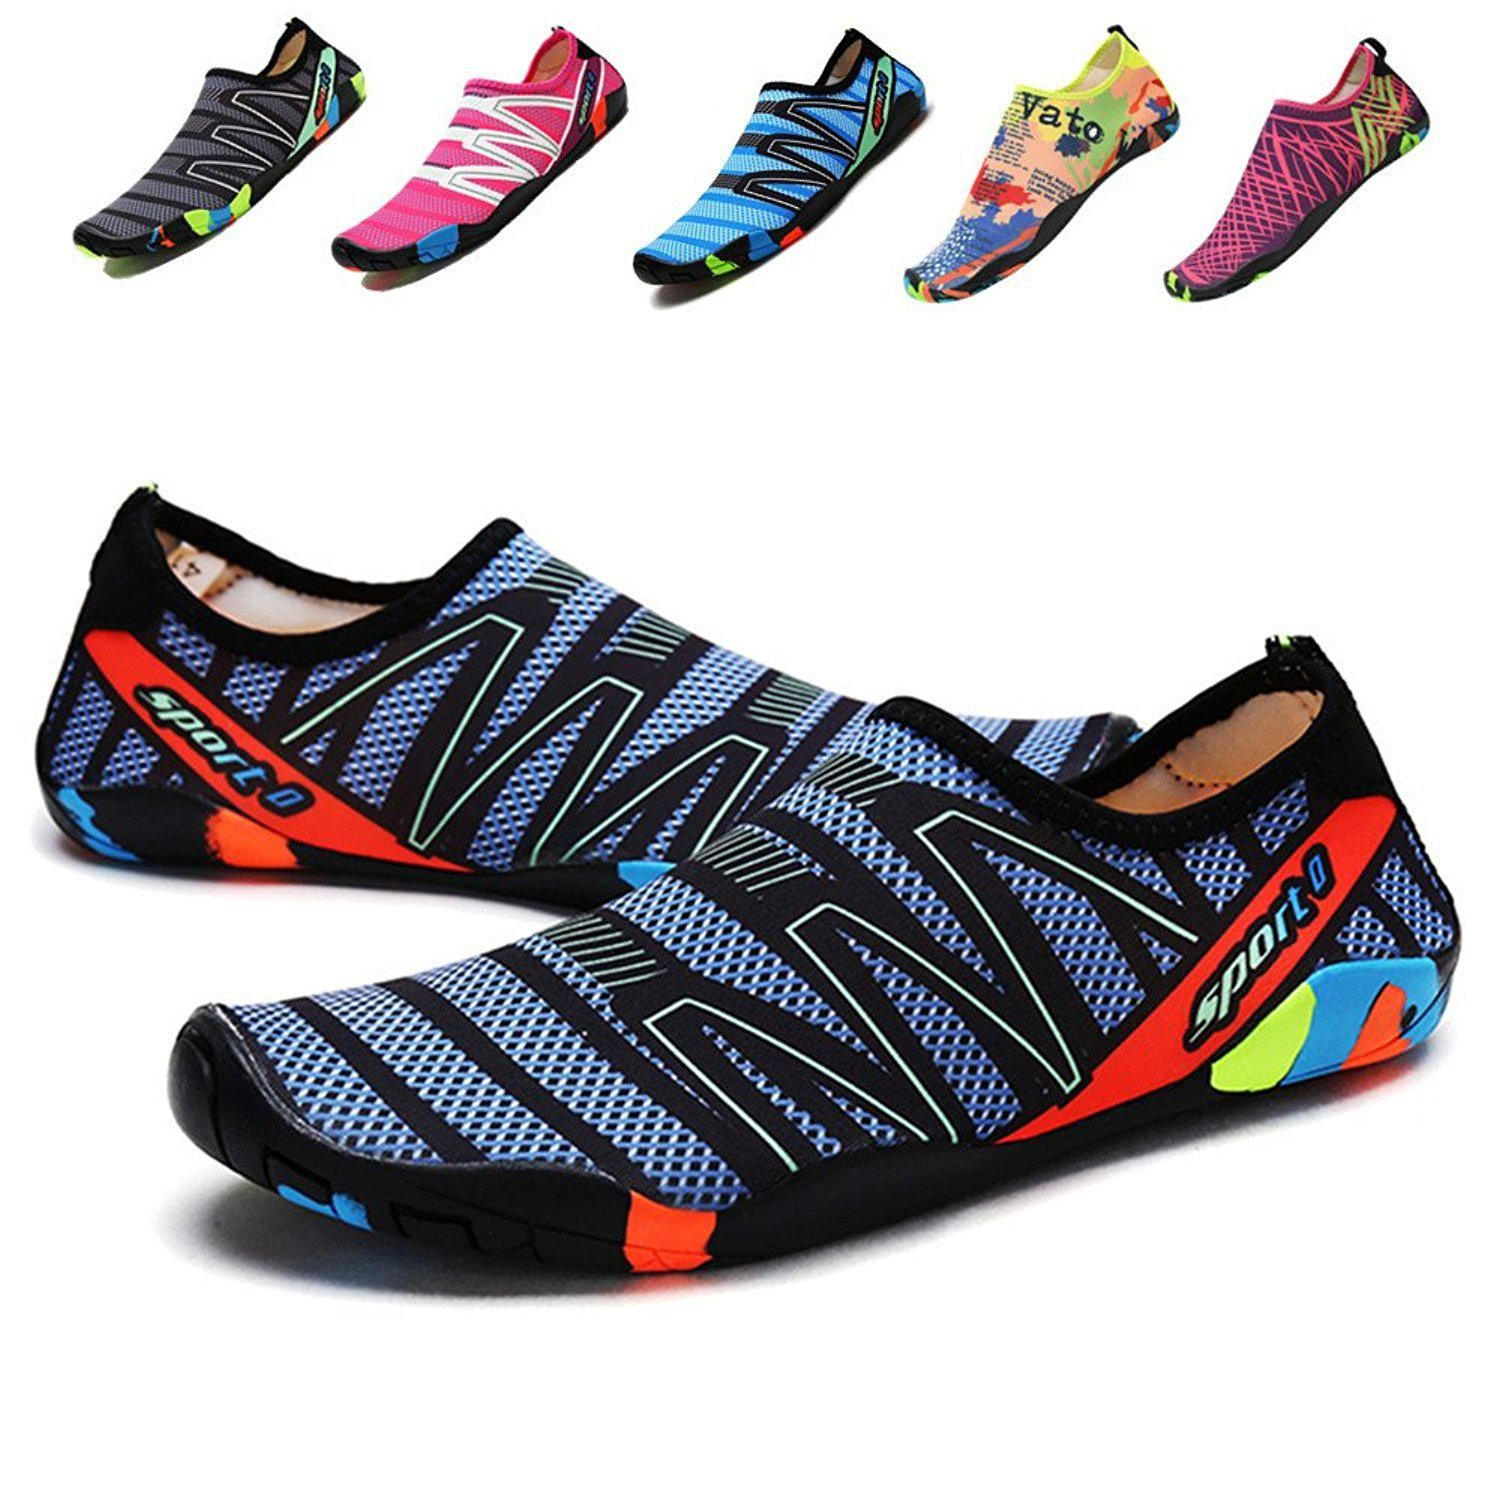 694f54f77700 Sanyge Breathable Mens Womens Water Shoes Beach Swim Shoes QuickDry Aqua  Socks Pool Shoes for Surf